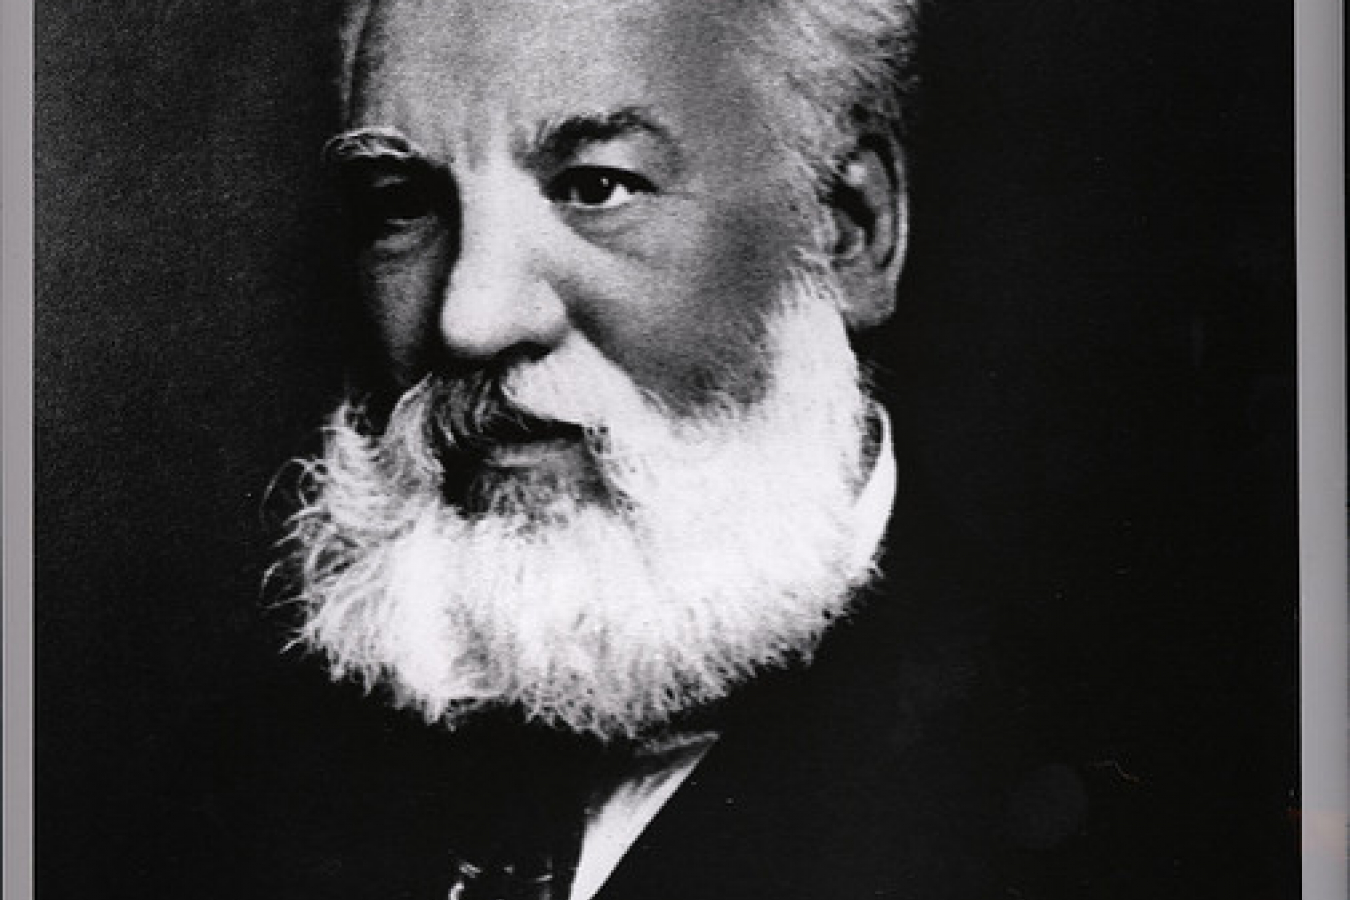 Portrait of Alexander Graham Bell (1847-1922) born in Scotland, Inventor of first practical telephone